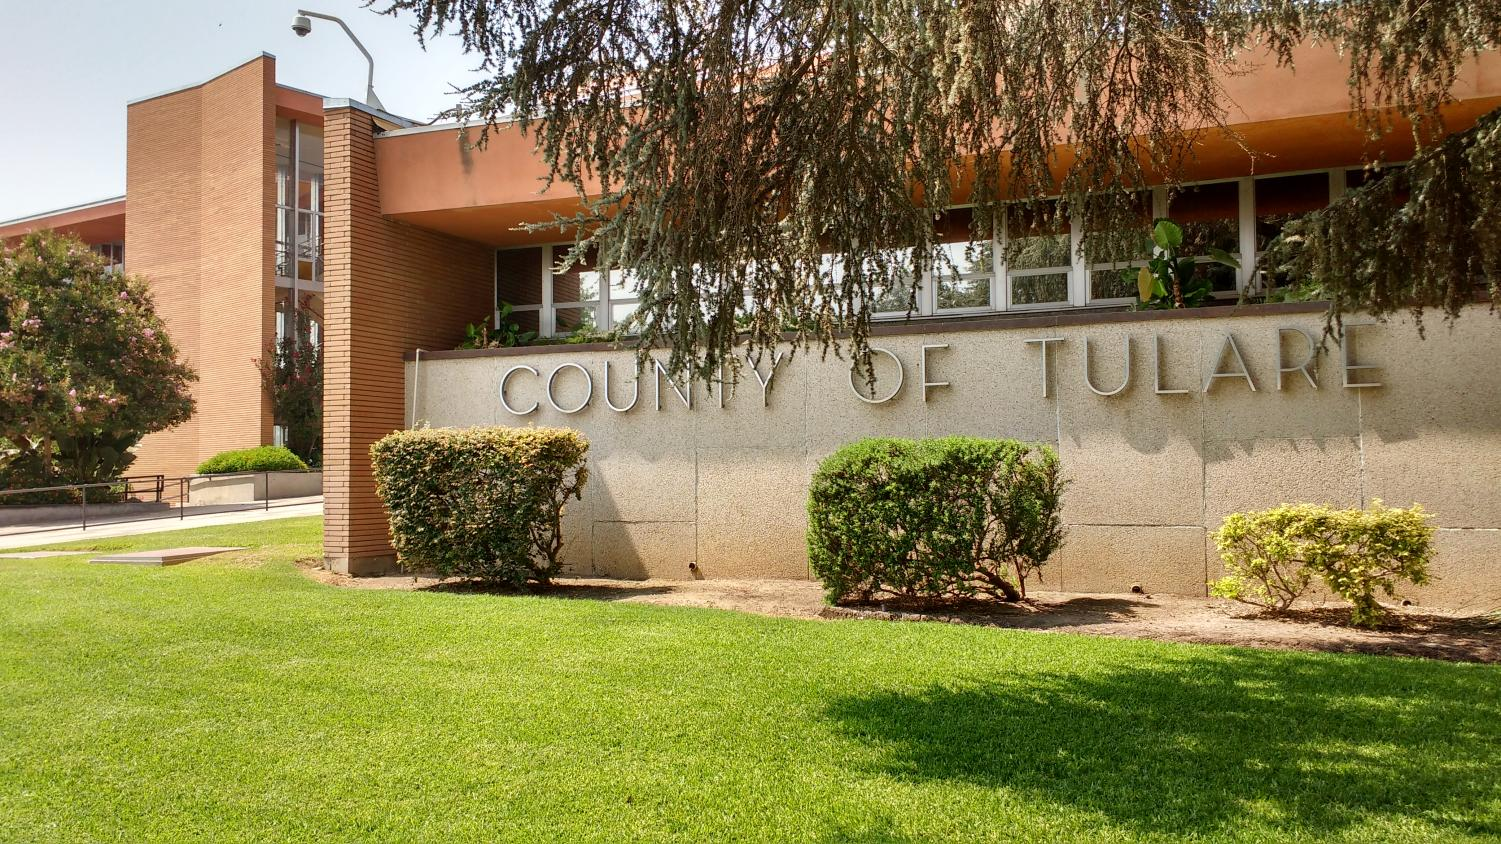 Tulare County Superior Court, location of Josiah Banks' forthcoming preliminary hearing.